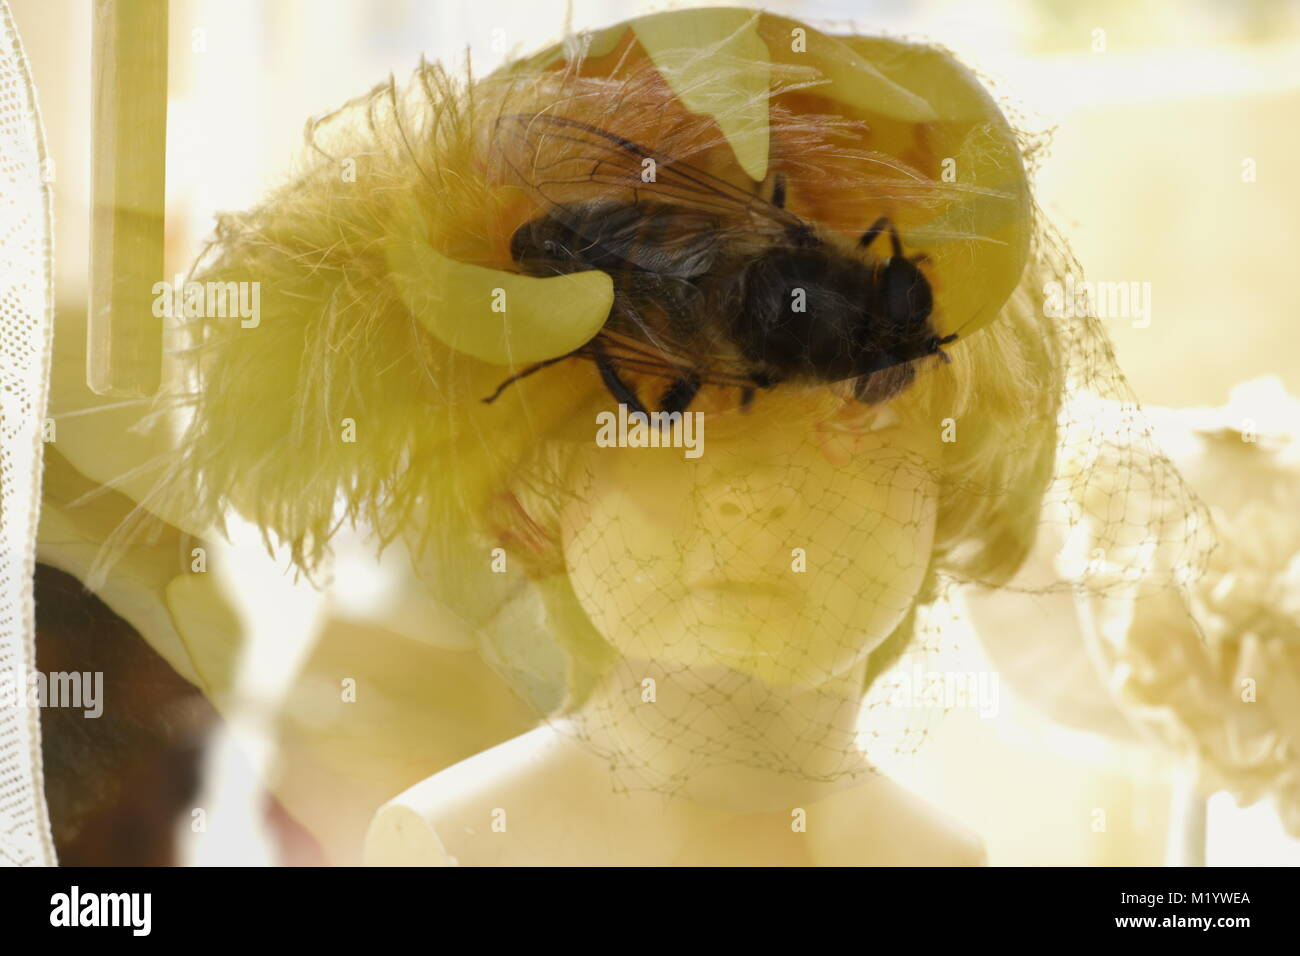 Double exposure dolls head with insect - Stock Image